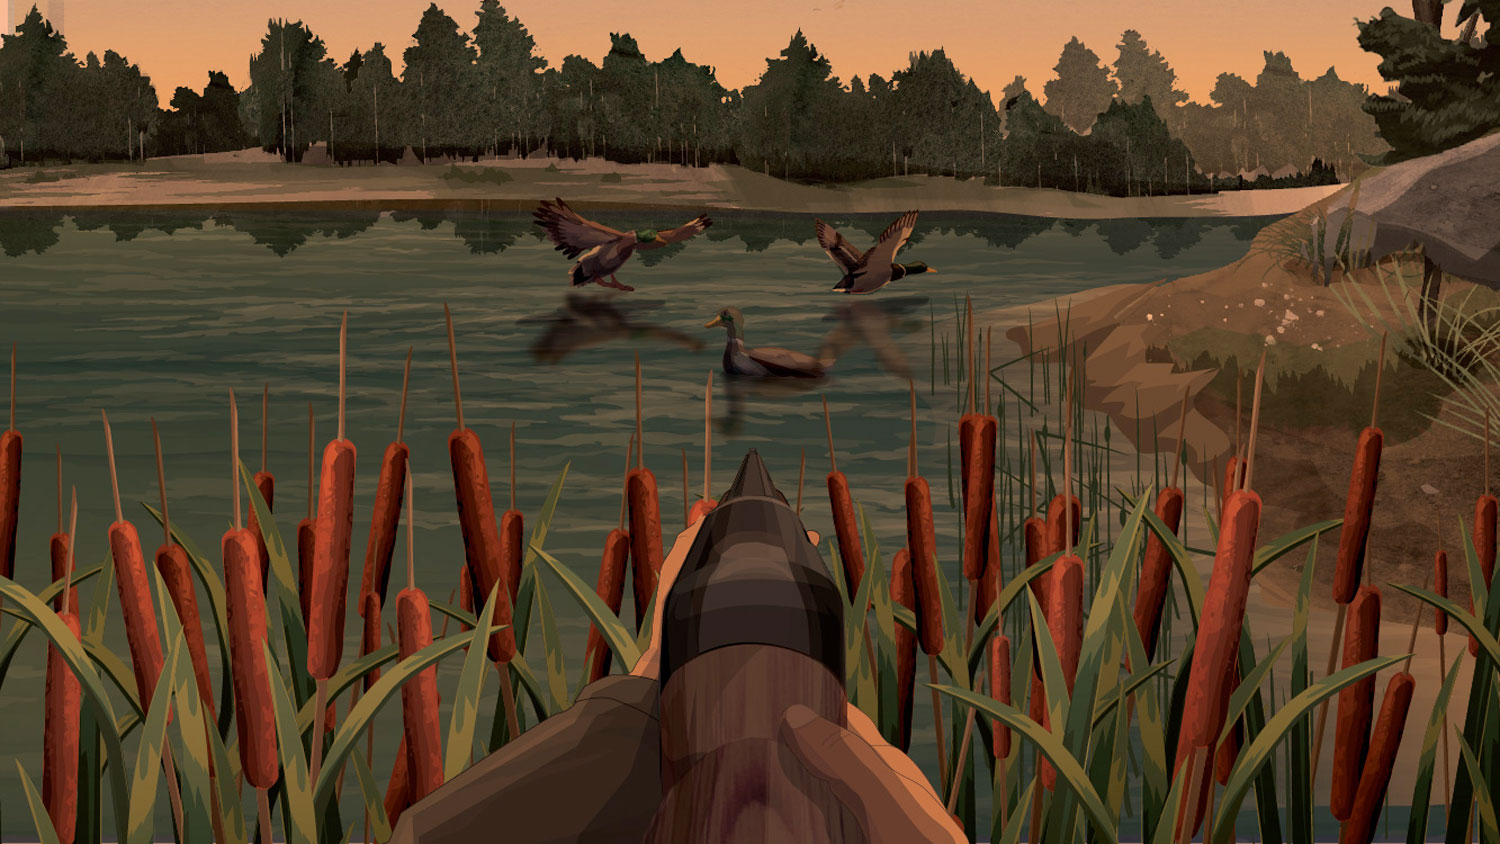 Illustration of a hunter's hands holding a forward facing firearm aimed at ducks on a body of water.